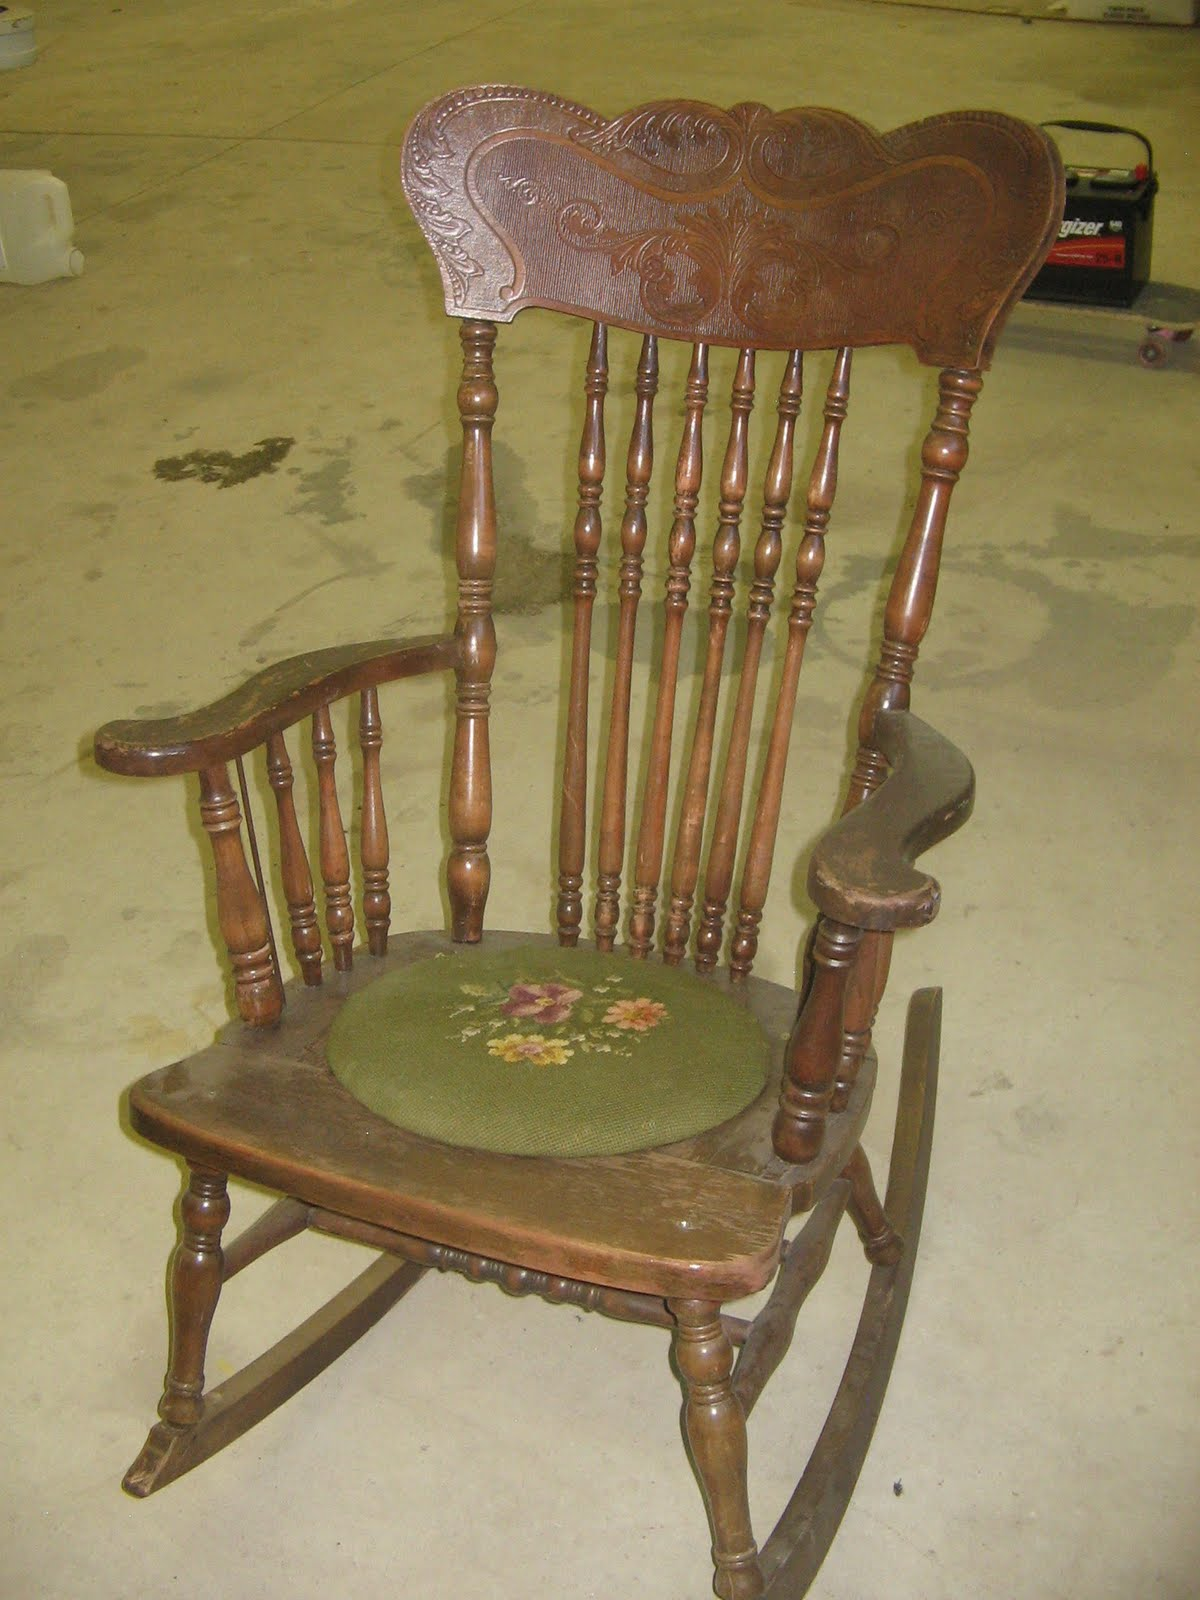 Antique upholstered rocking chair styles - Antique Wooden Rocking Chair Antique Rocking Chair Antique Wooden Rocking Chair